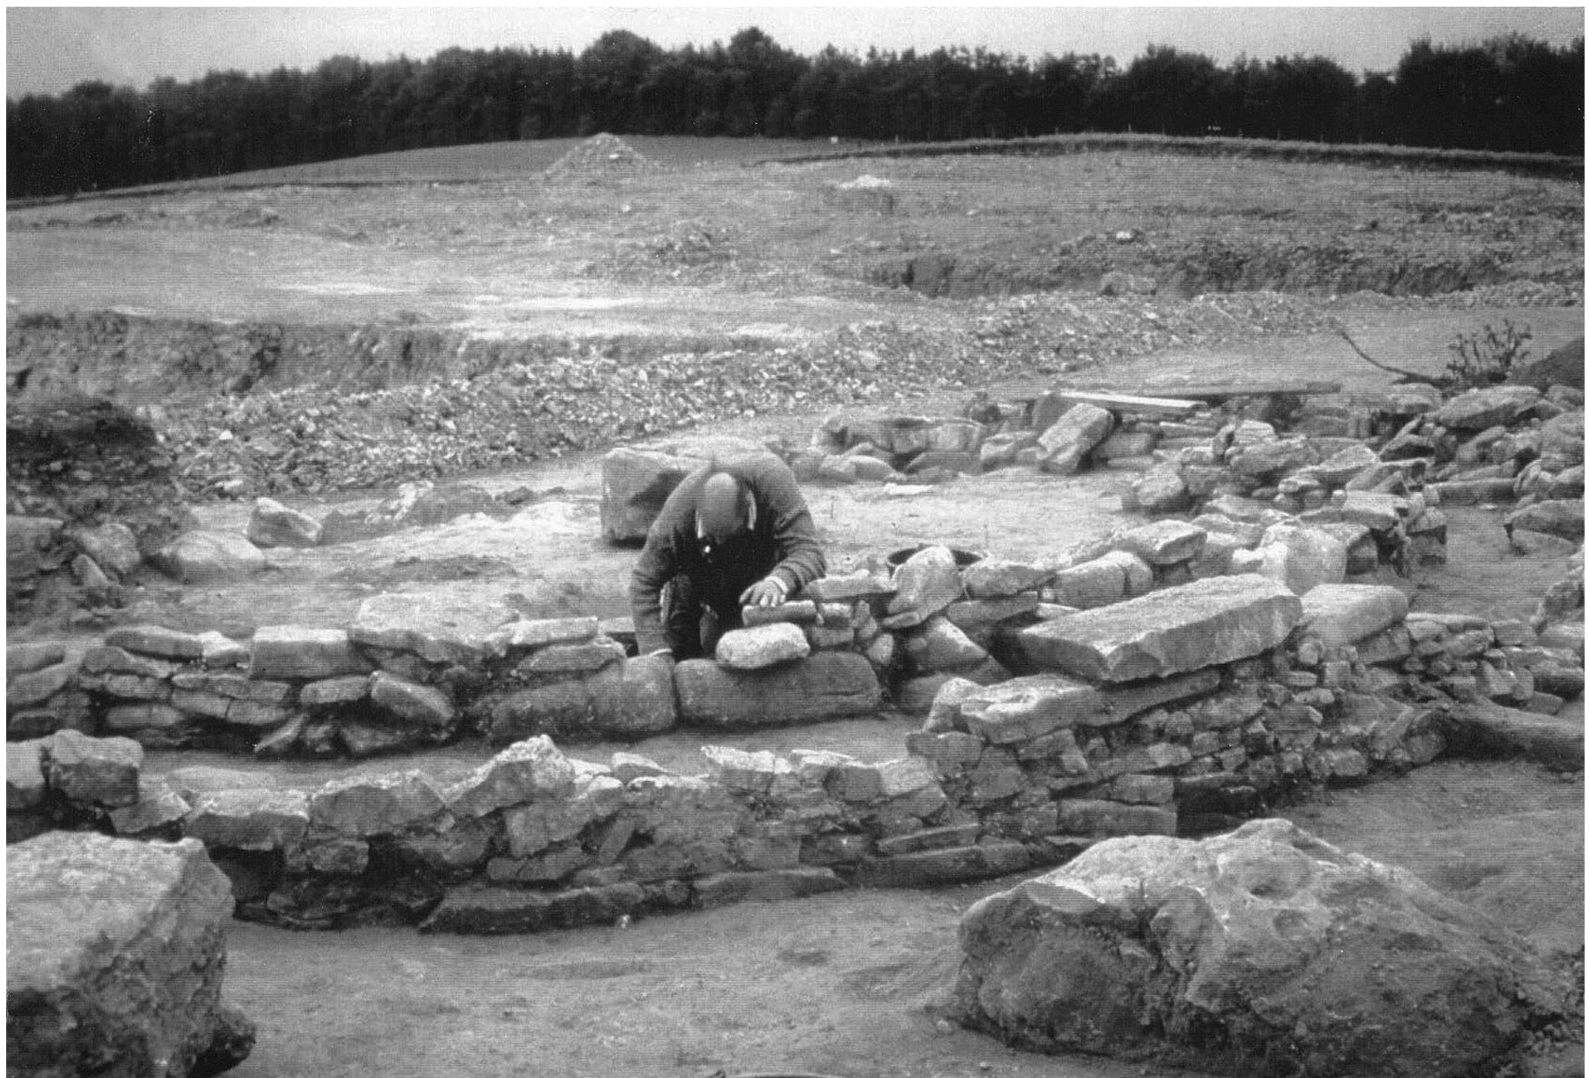 A photo showing several low stone walls, amongst rocks. A man is bending over one of the walls, looking closely down at the ground.